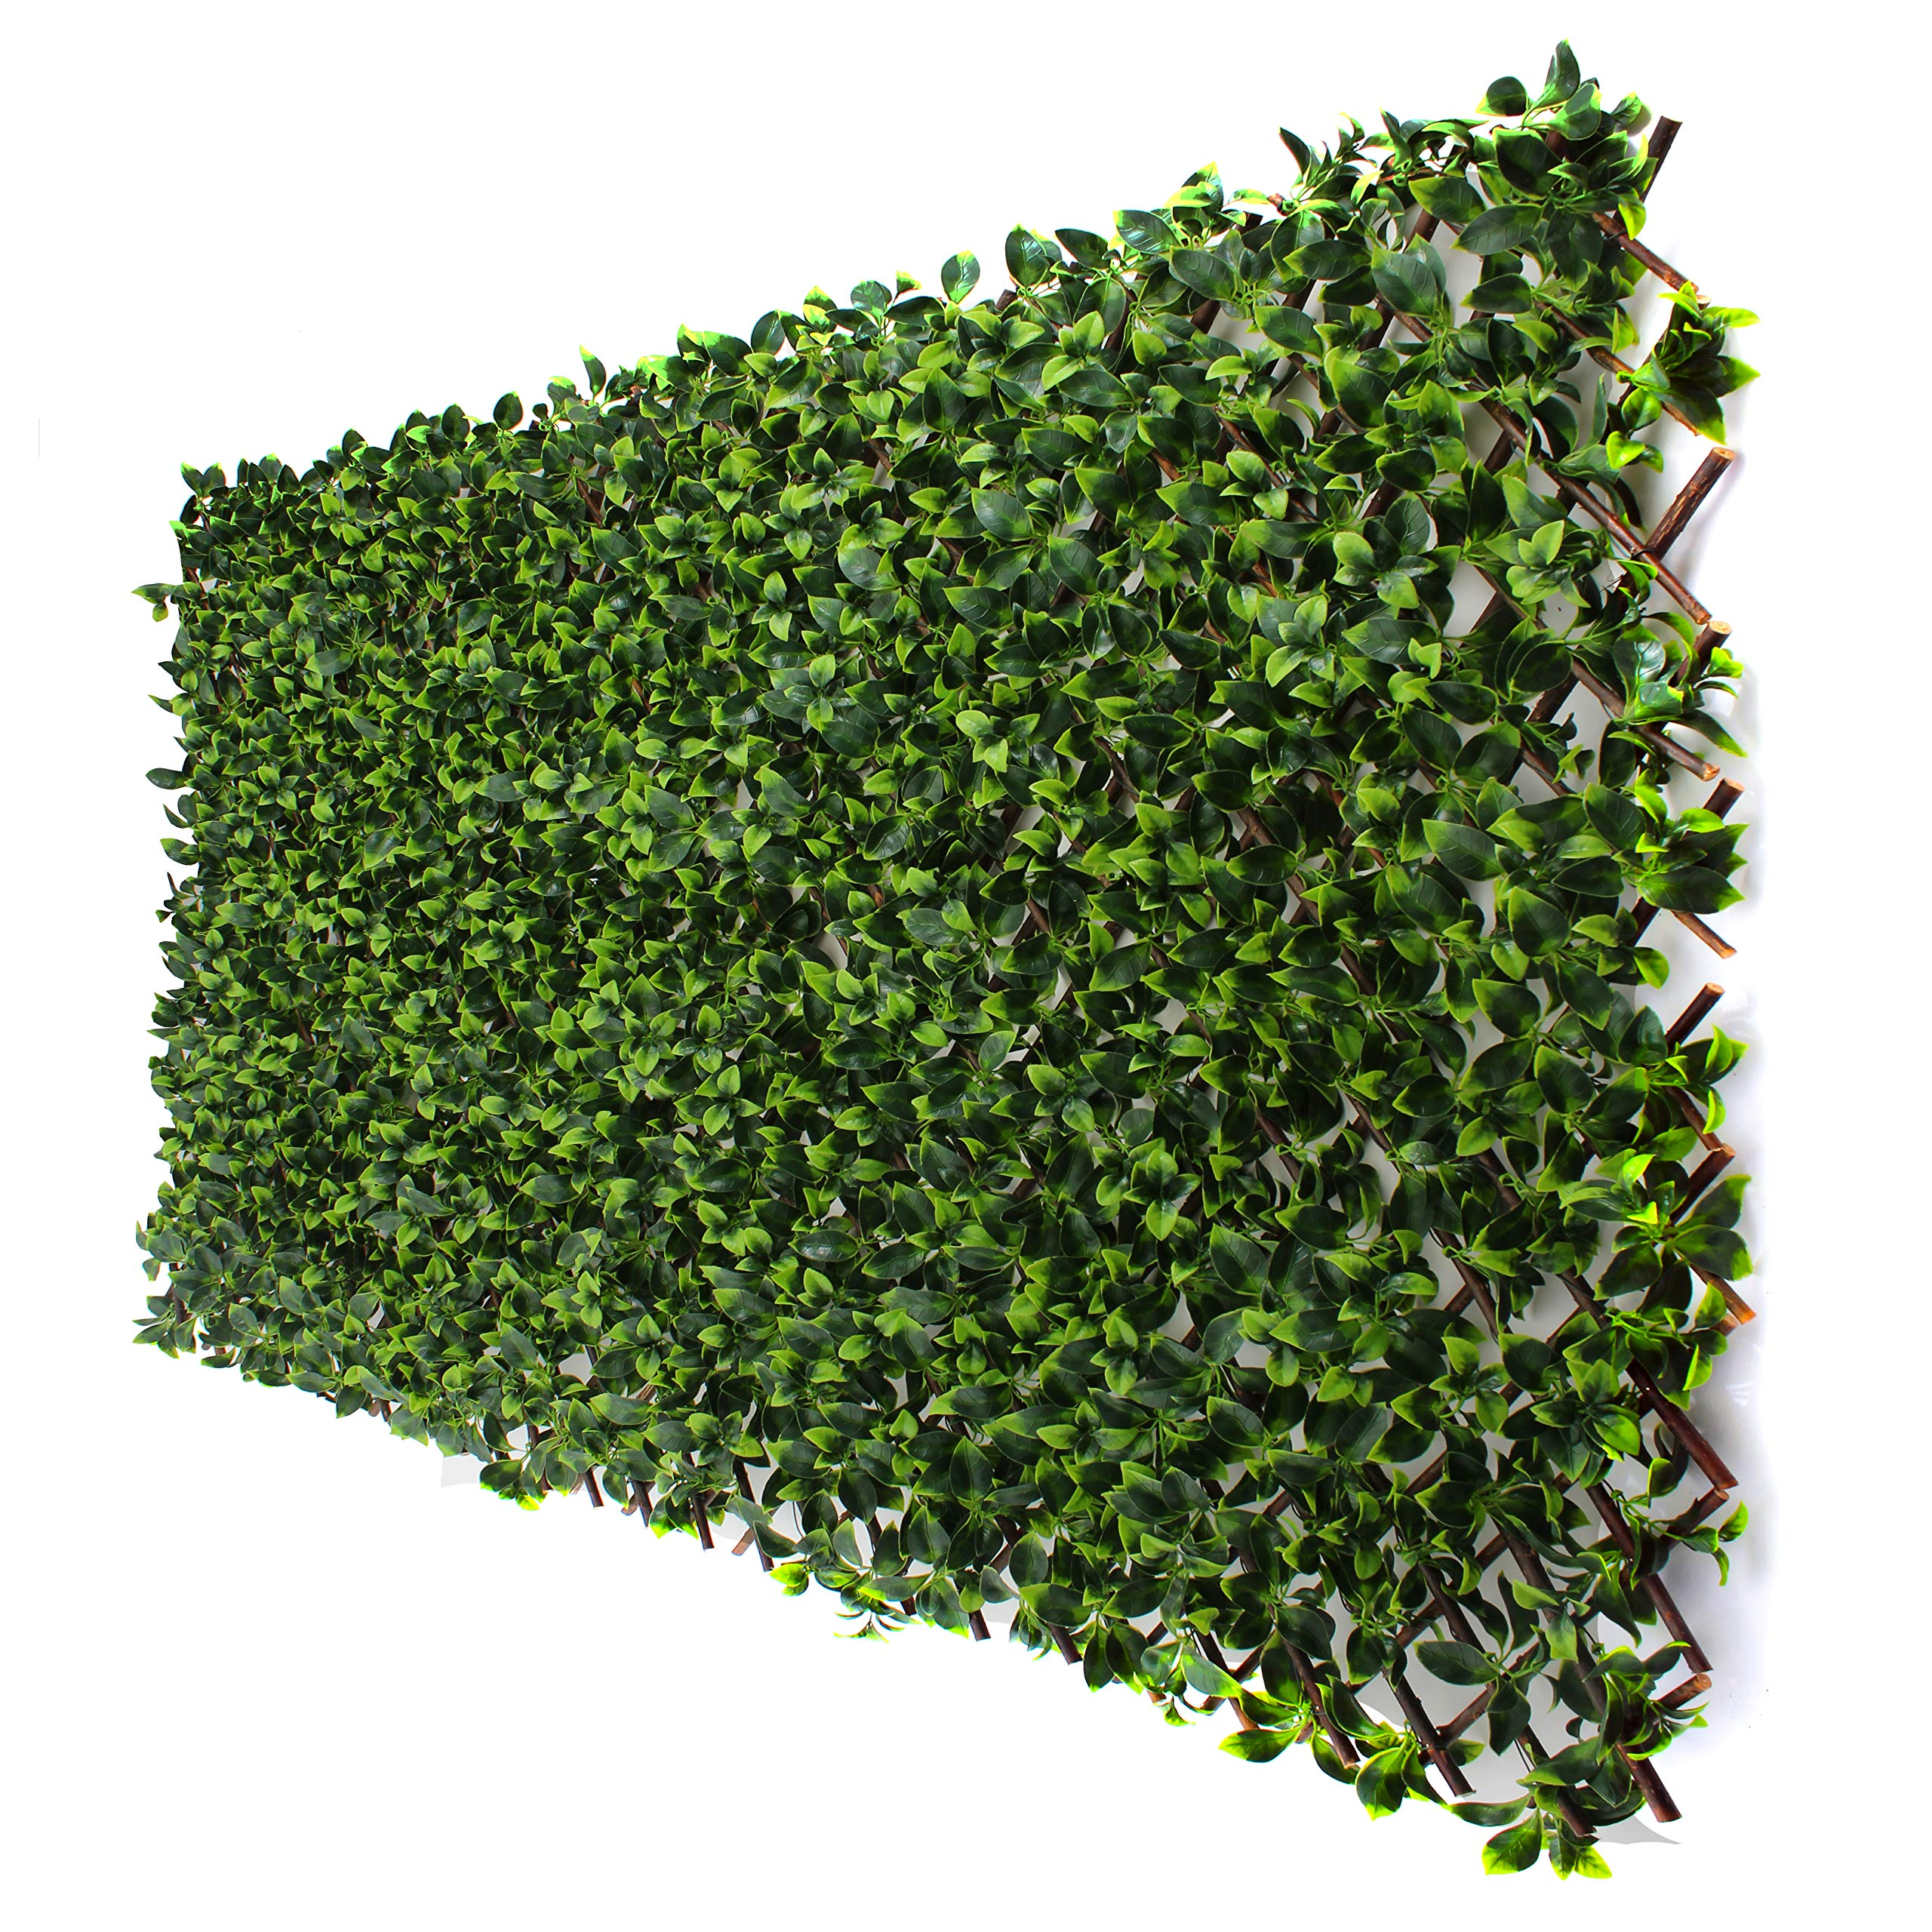 3rd Street Inn Gardenia Leaf Trellis 1-Pack - Bamboo Greenery Panel - Boxwood and Ivy Privacy Fence Substitute - DIY Flexible Fencing (Gardenia) by 3rd Street Inn